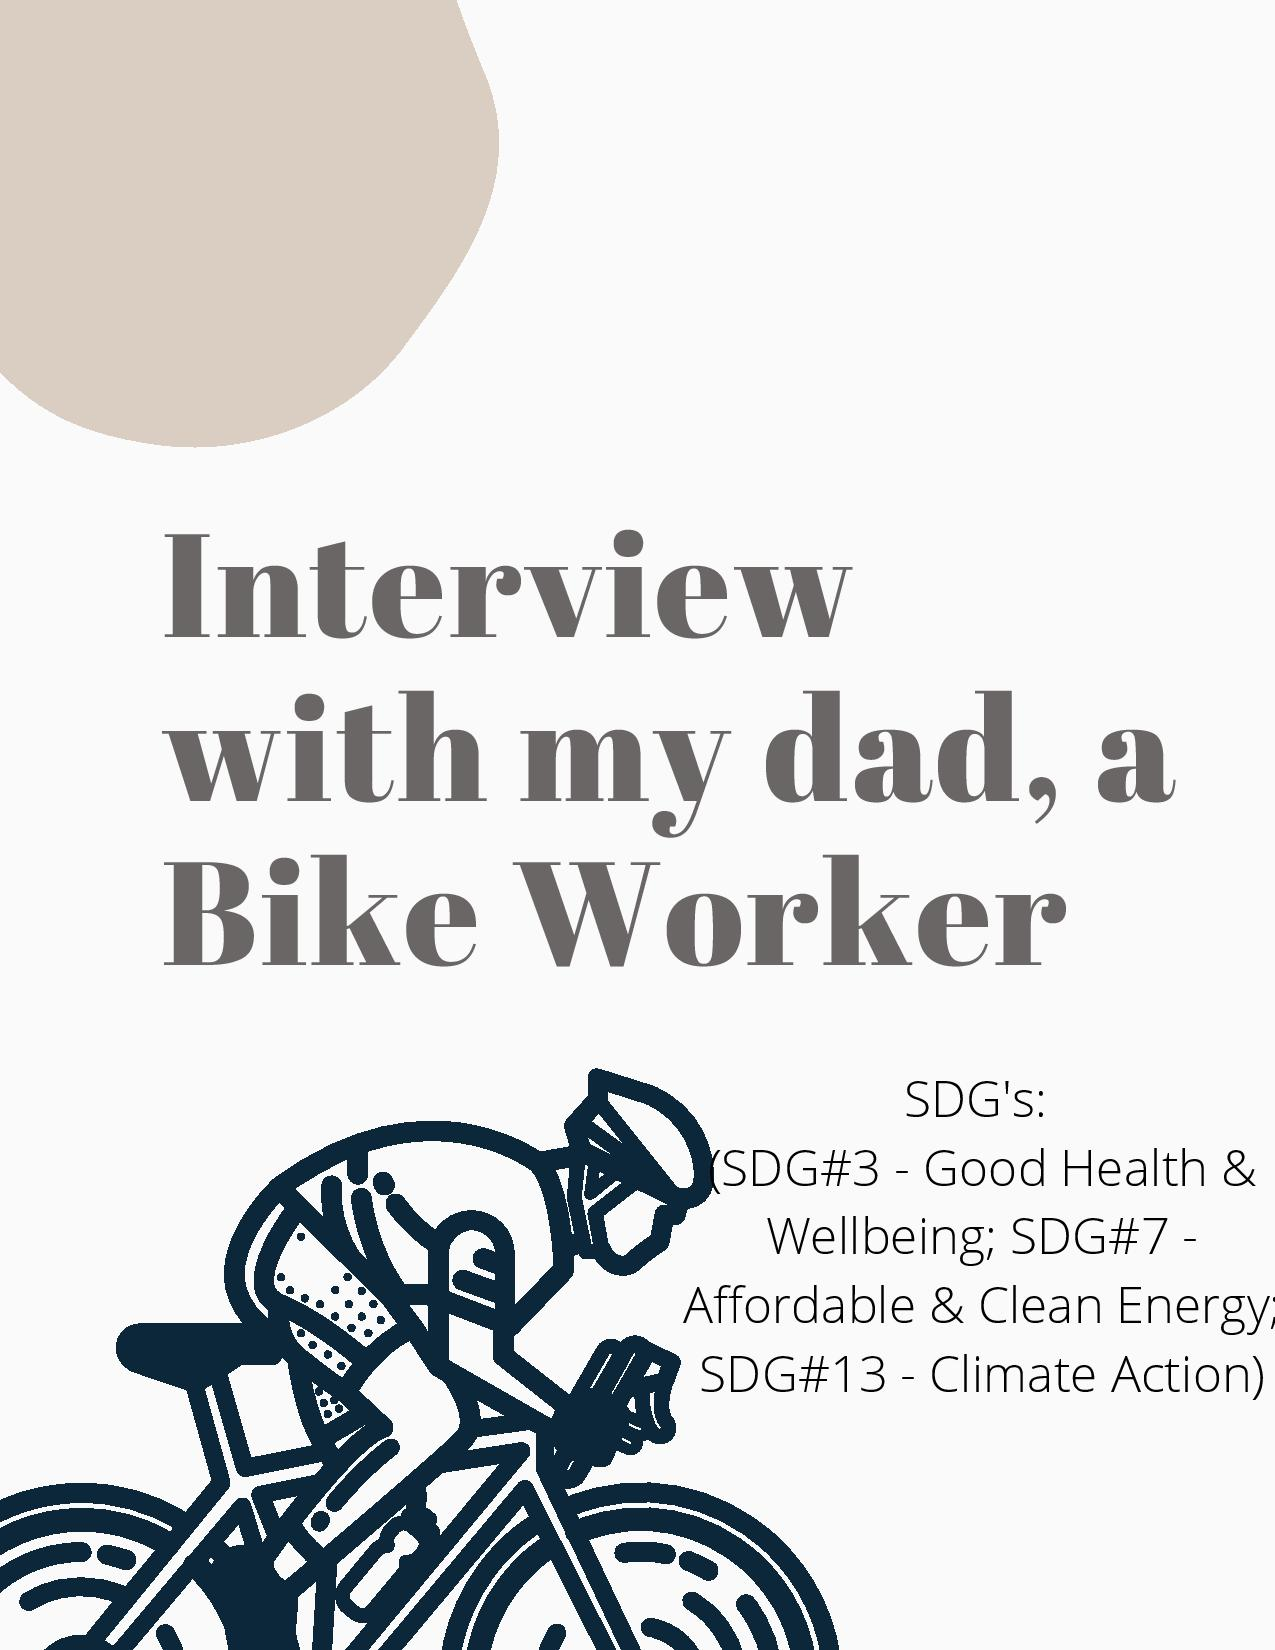 Interview-with-bike-worker-on-SDG-s-page-001.jpg